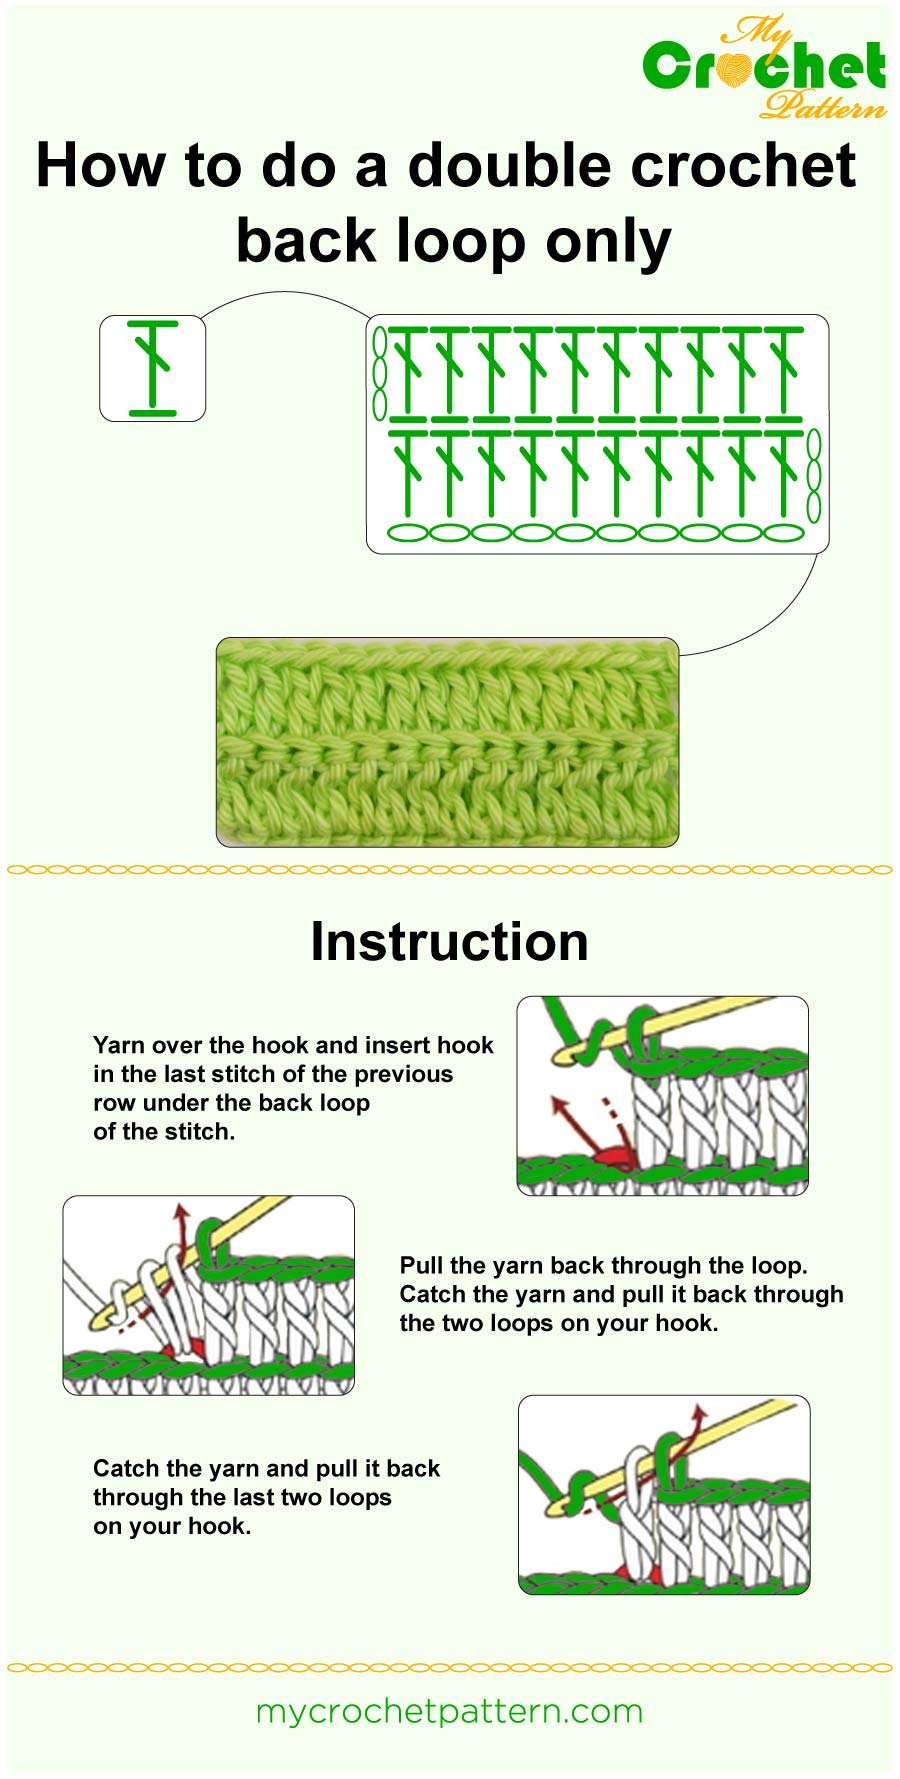 how to do a double crochet back loop only - infographic